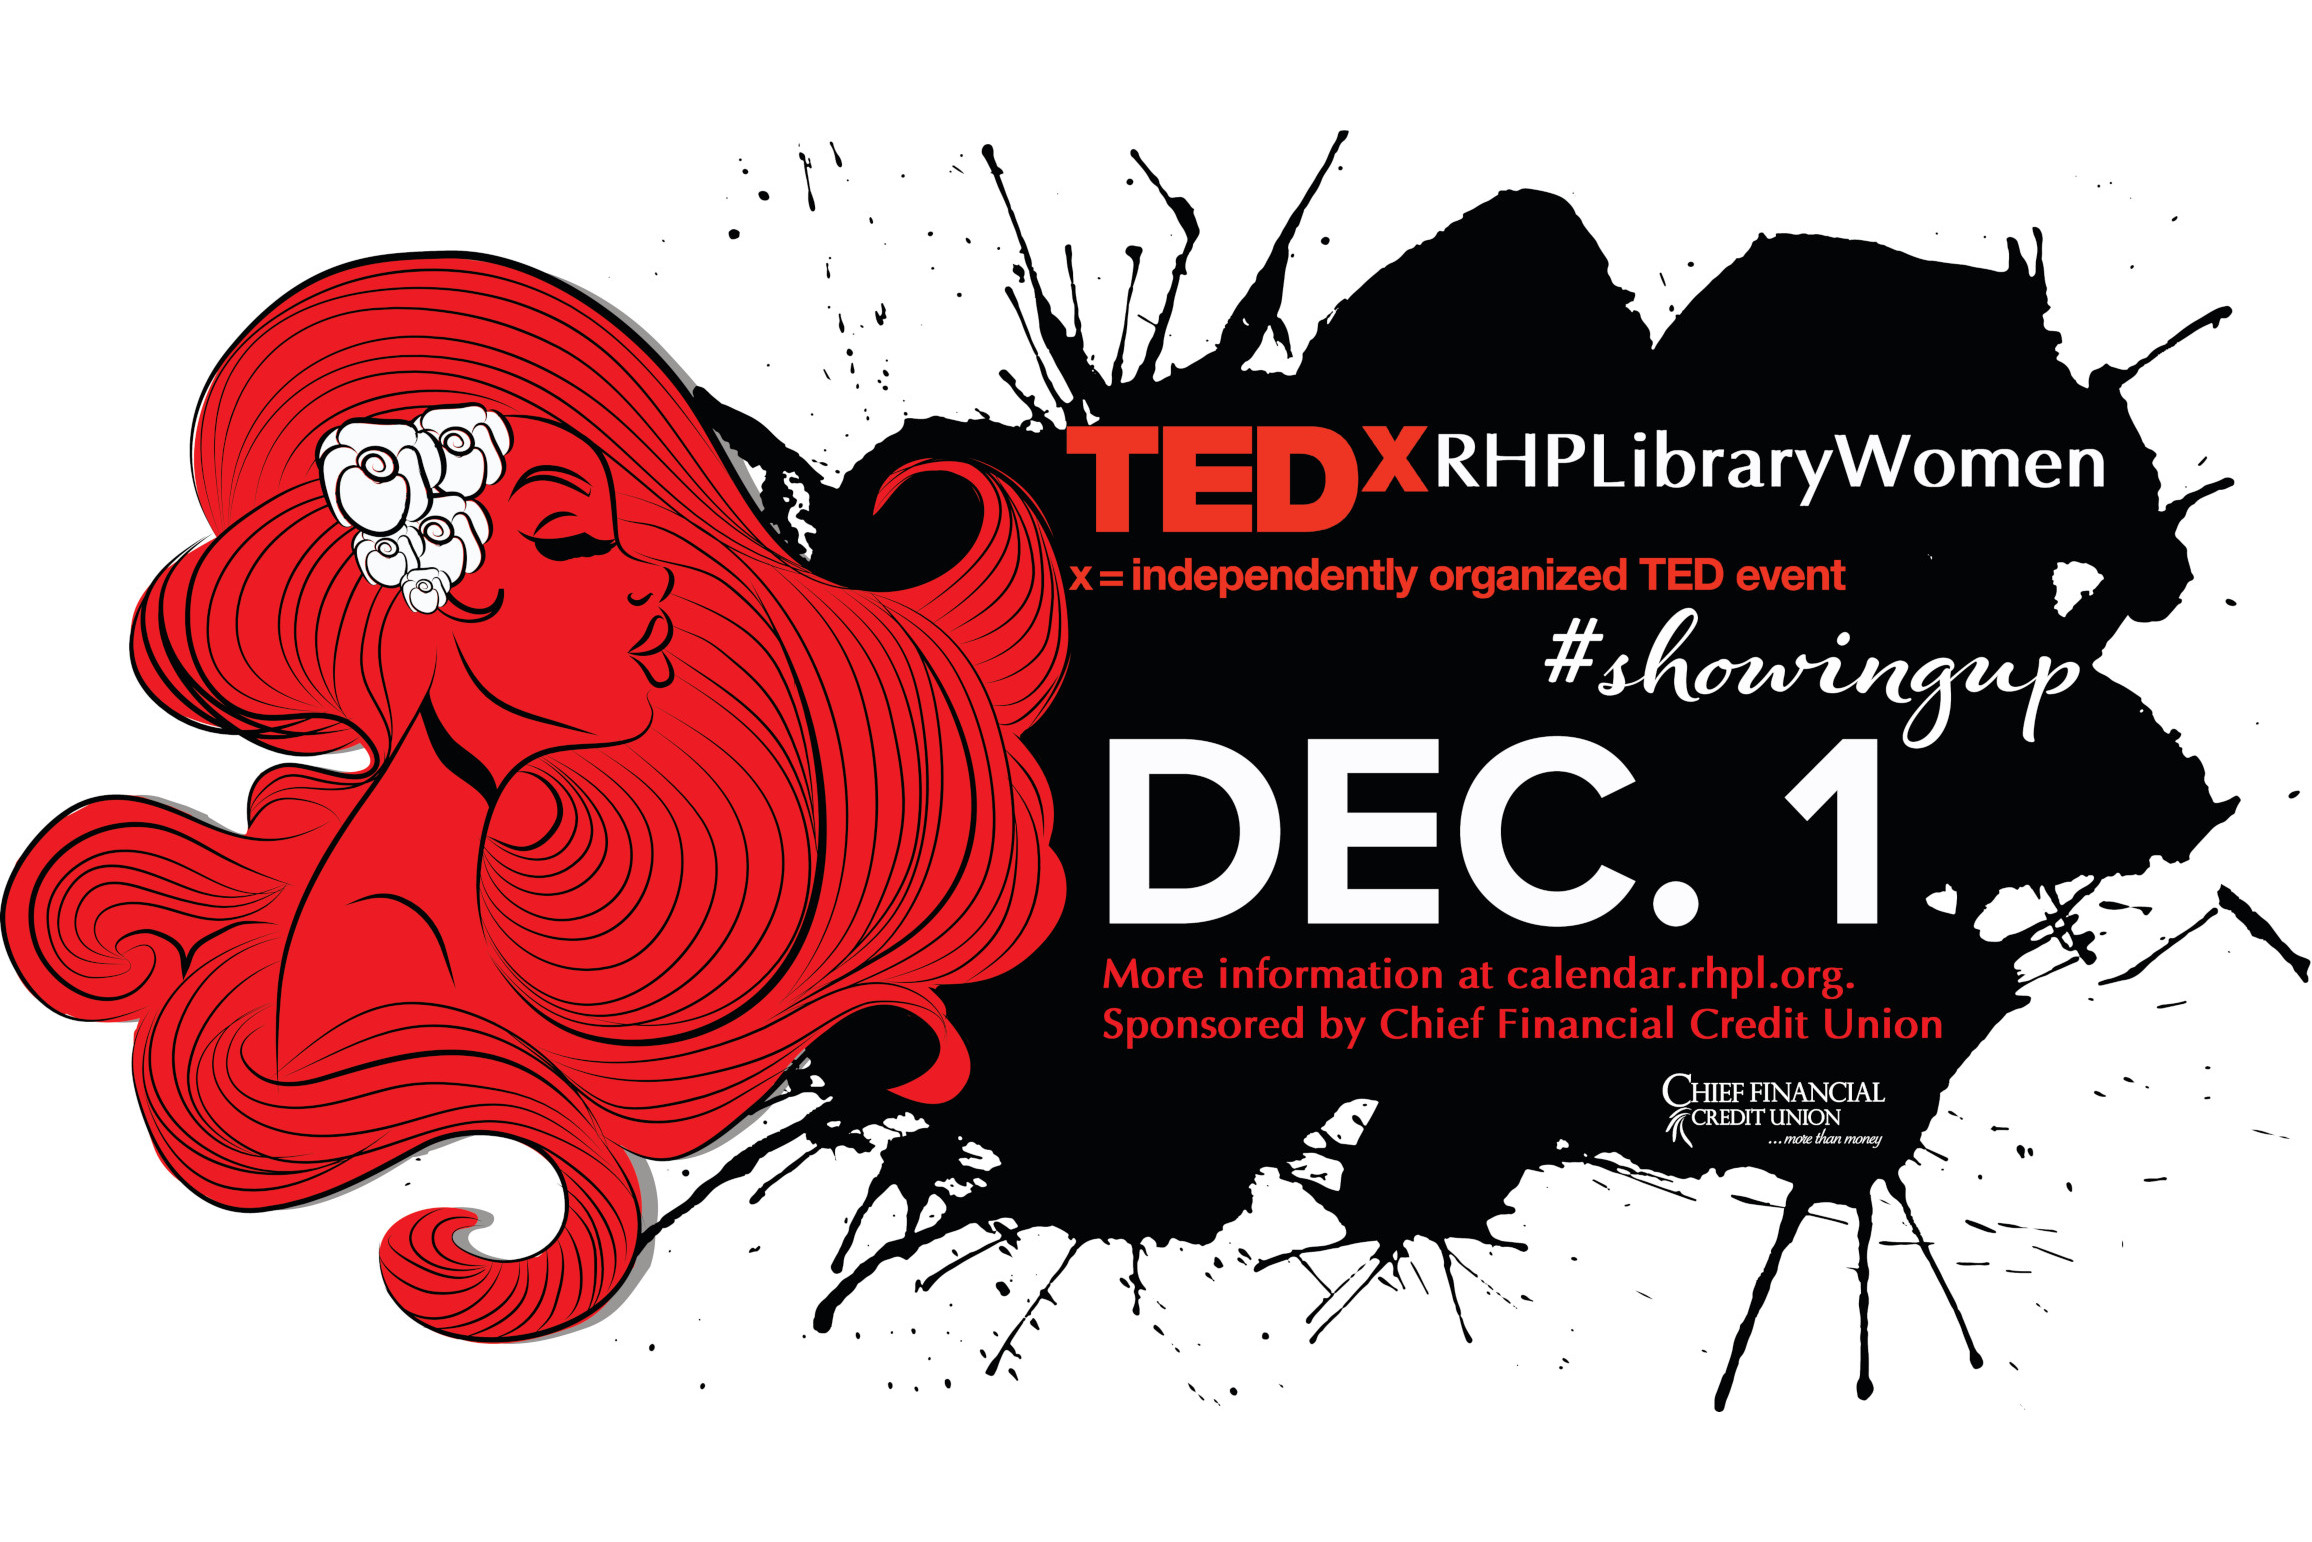 TEDxRHPLibraryWomen Dec 1 2018